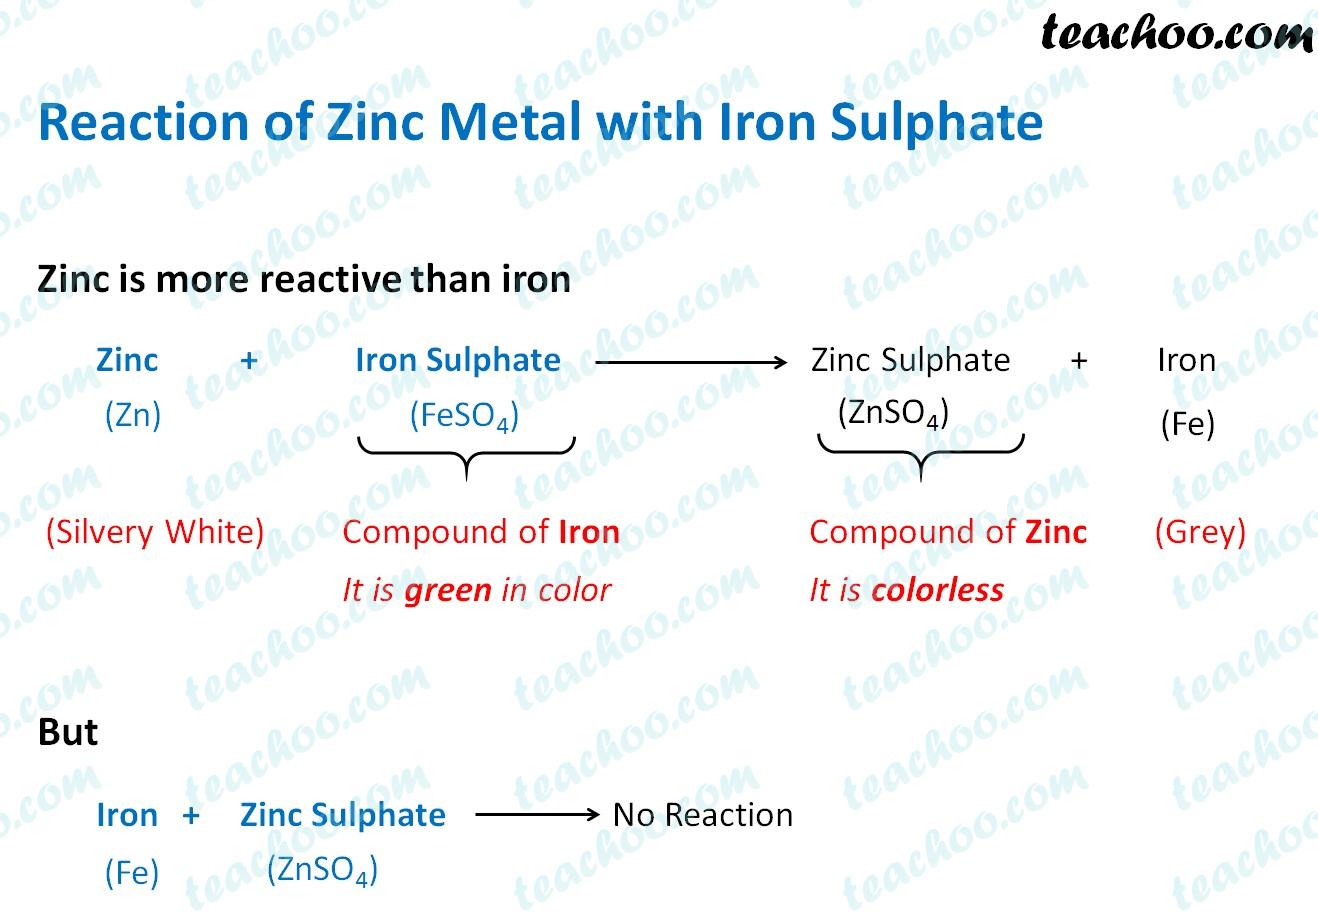 reaction-of-zinc-metal-with-iron-sulphate.jpg